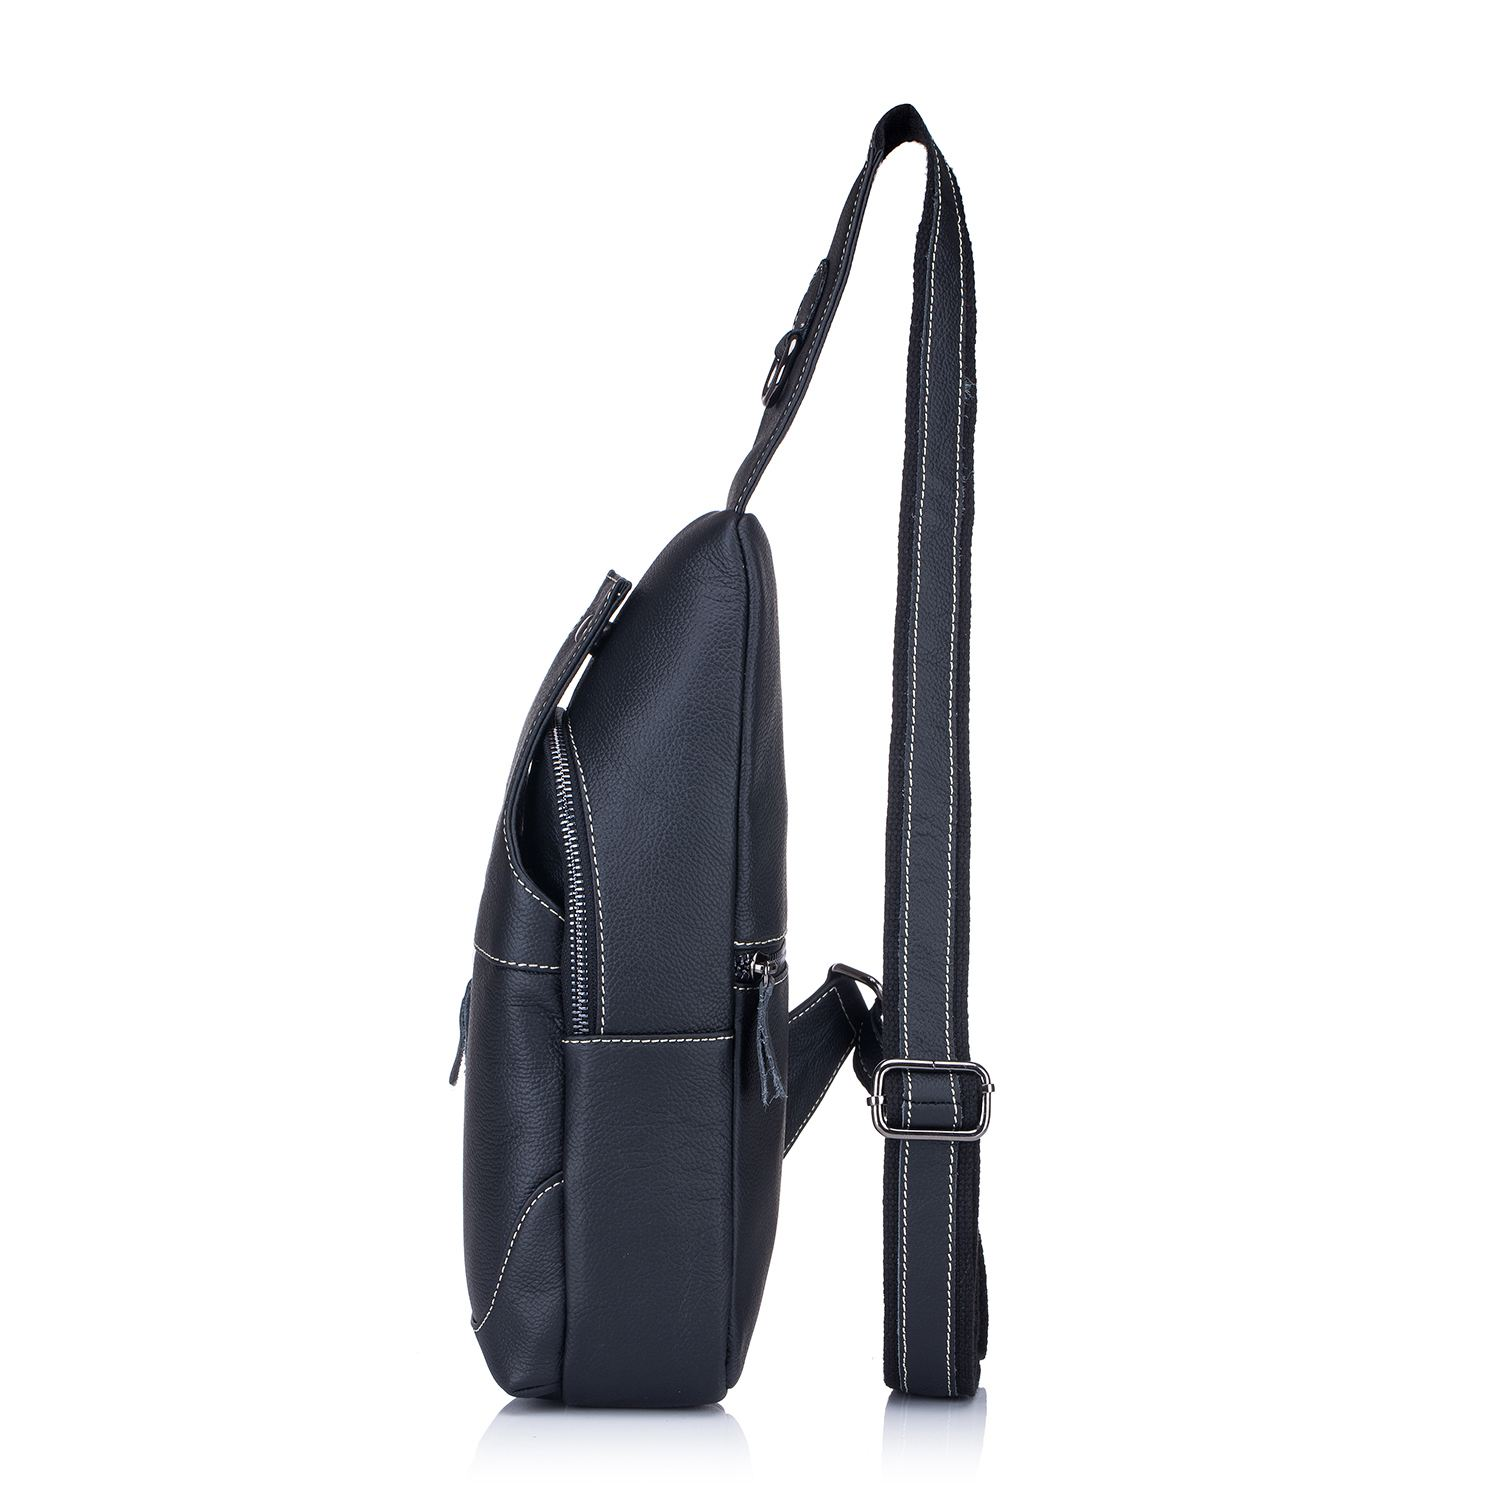 Men s Sling Bag Genuine Leather Chest Shoulder Backpack Cross Body Purse  Water Resistant Anti Theft For Travel Hiking School 67c1abb22f99